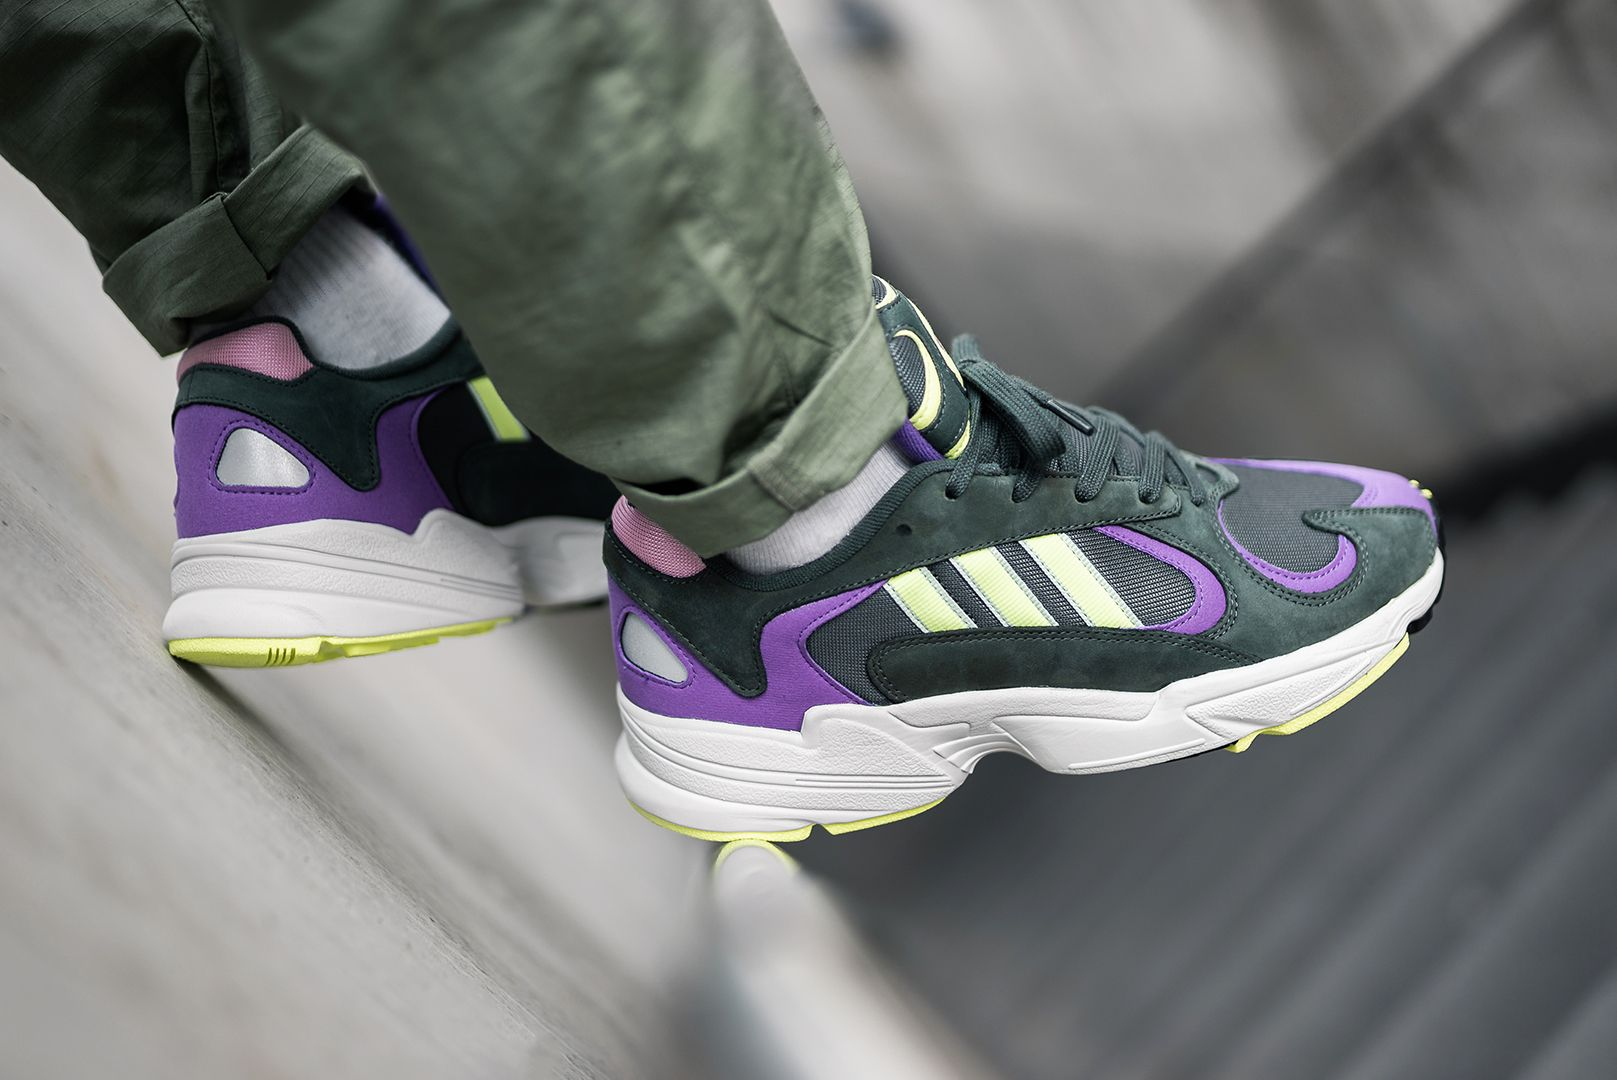 adidas Yung 1 (green purple) in 2019